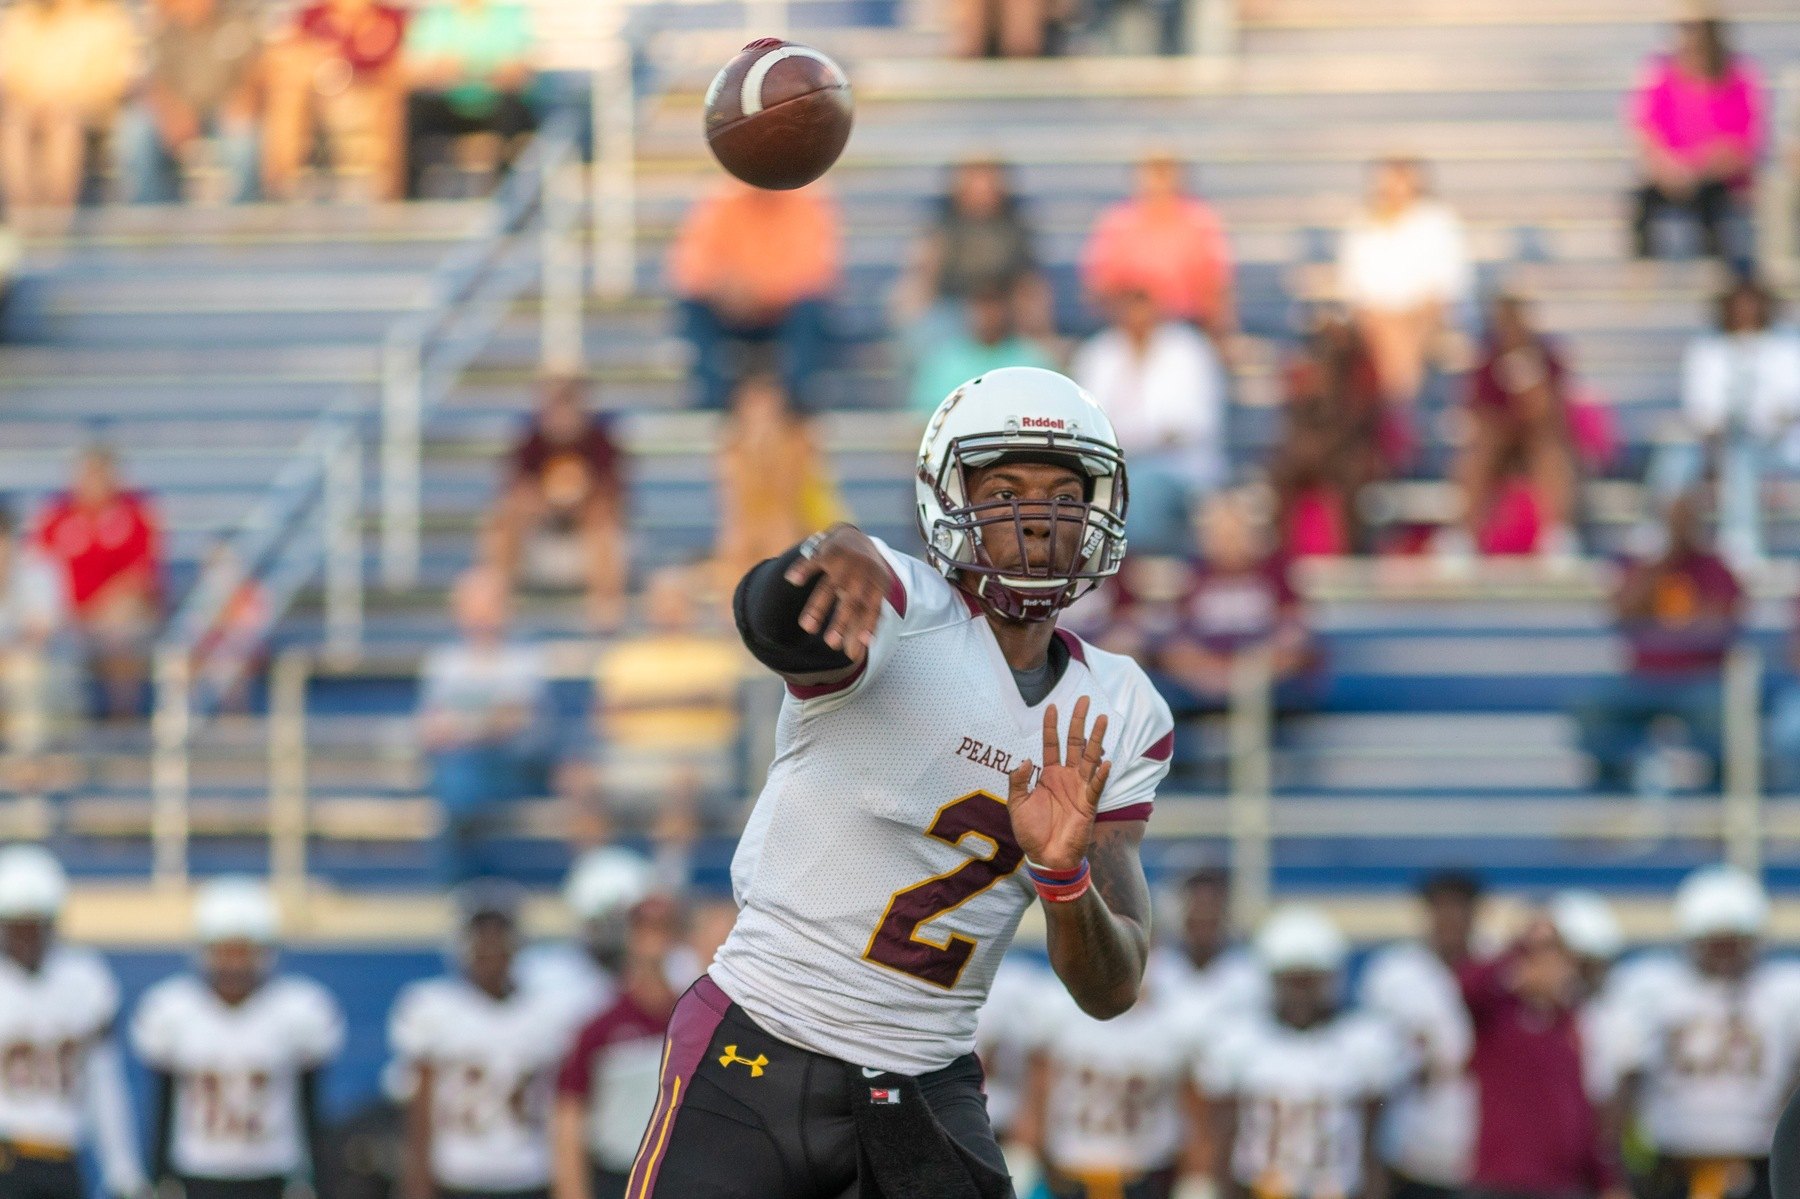 Pearl River's Terrence Humphrey wins MACJC Player of the Week